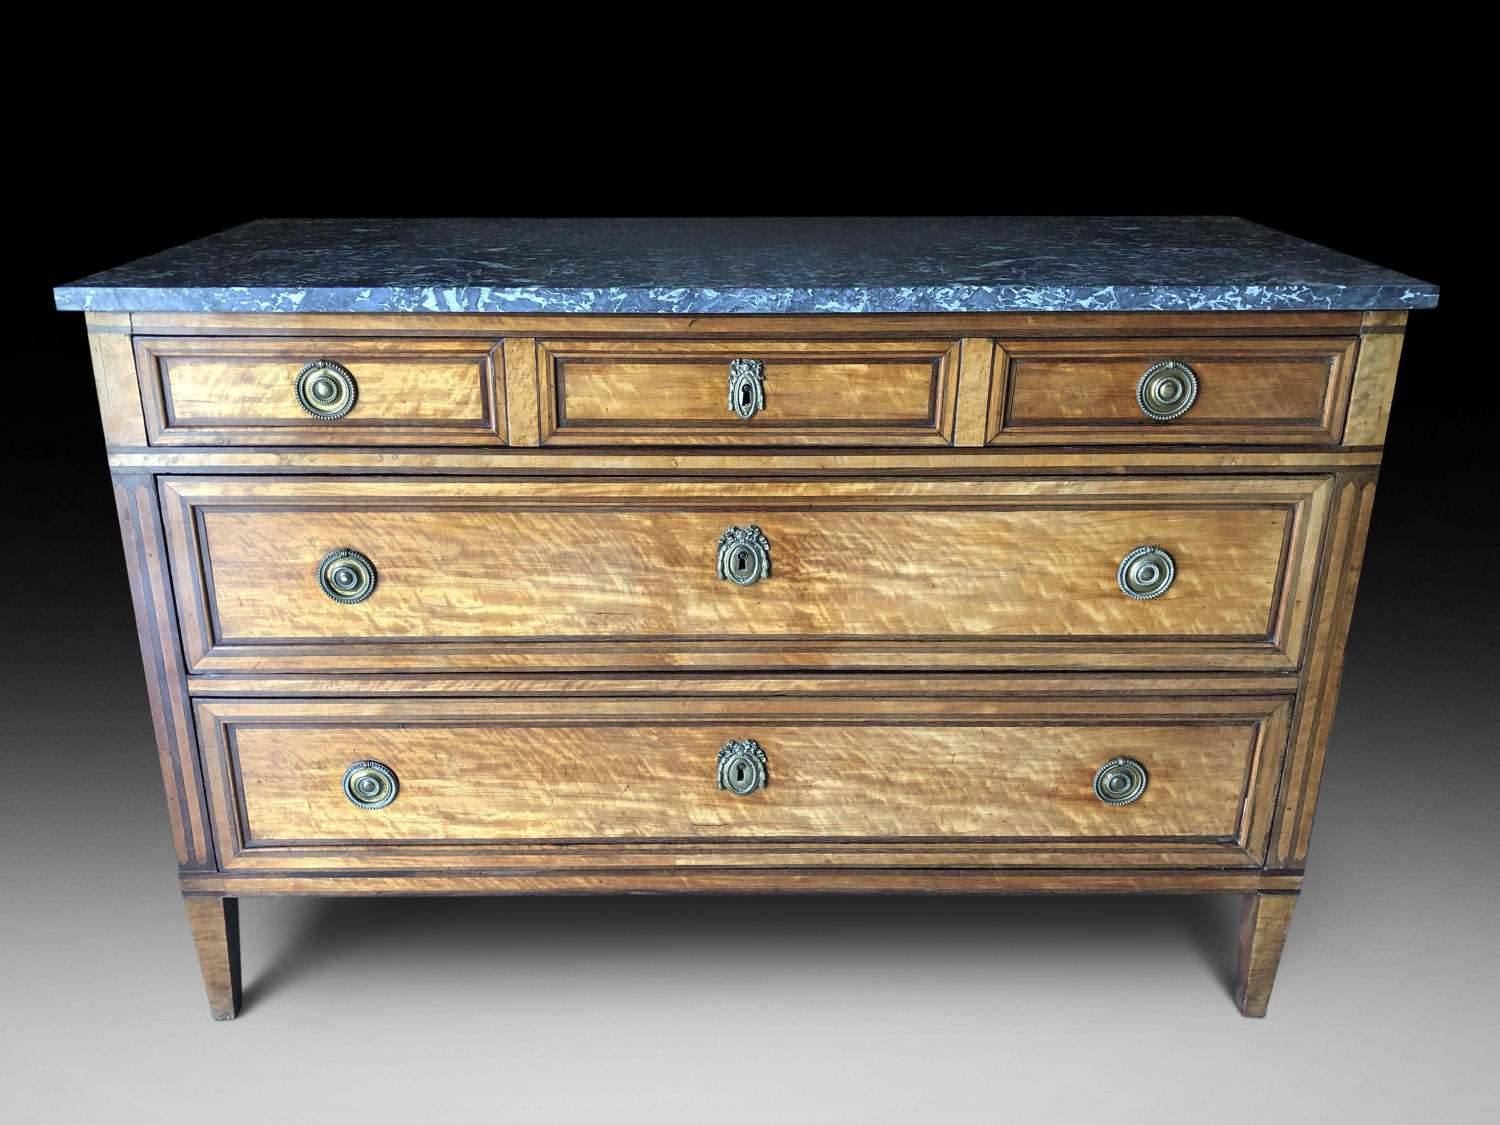 A LOUIS XVI PERIOD SATINWOOD COMMODE